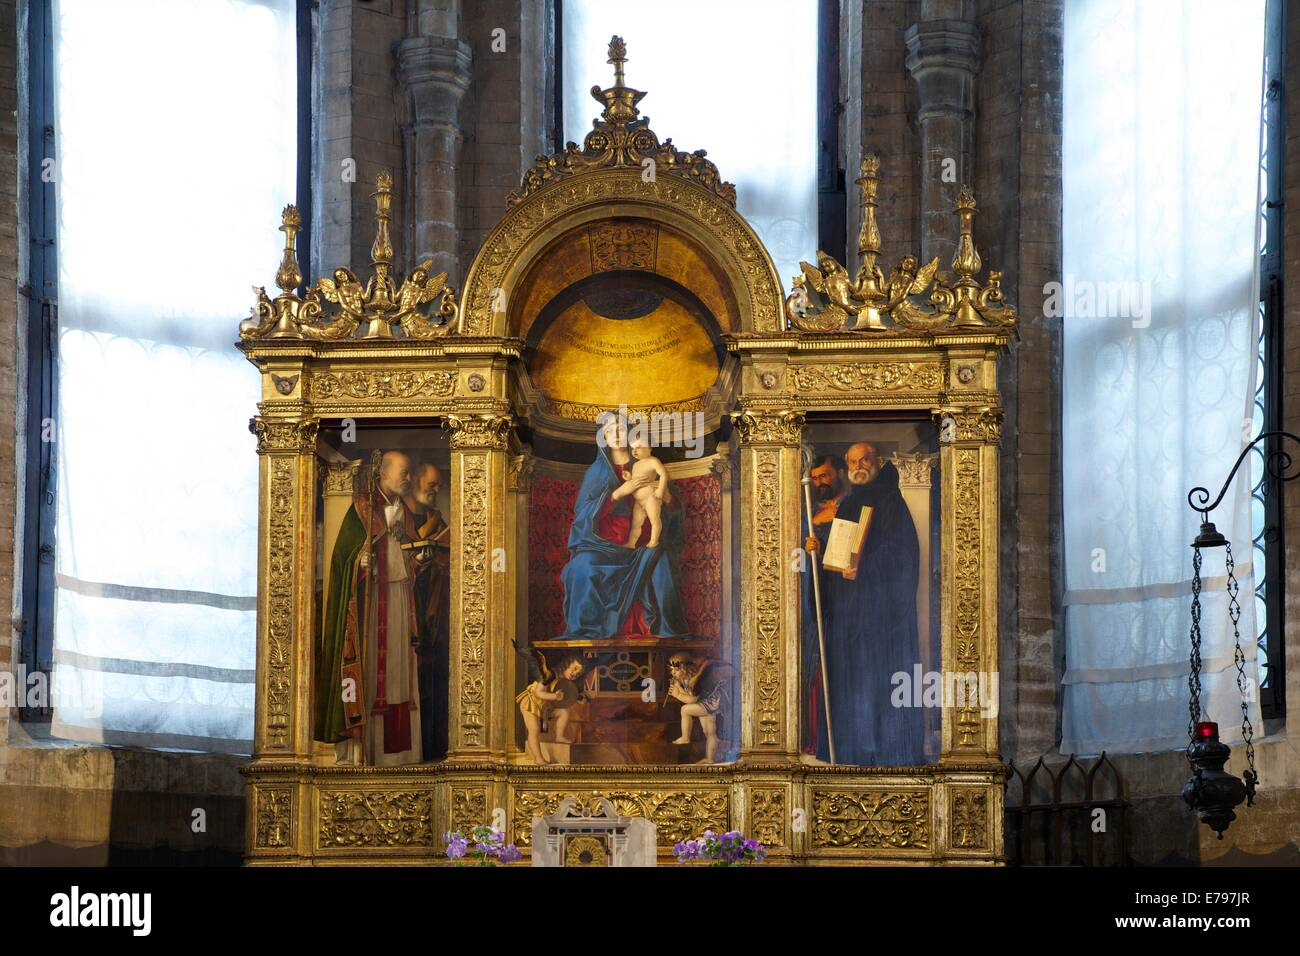 Frari Triptych, by Giovanni Bellini, 1488, Church of Santa Maria Gloriosa dei Frari, Venice, Italy, Europe Stock Photo